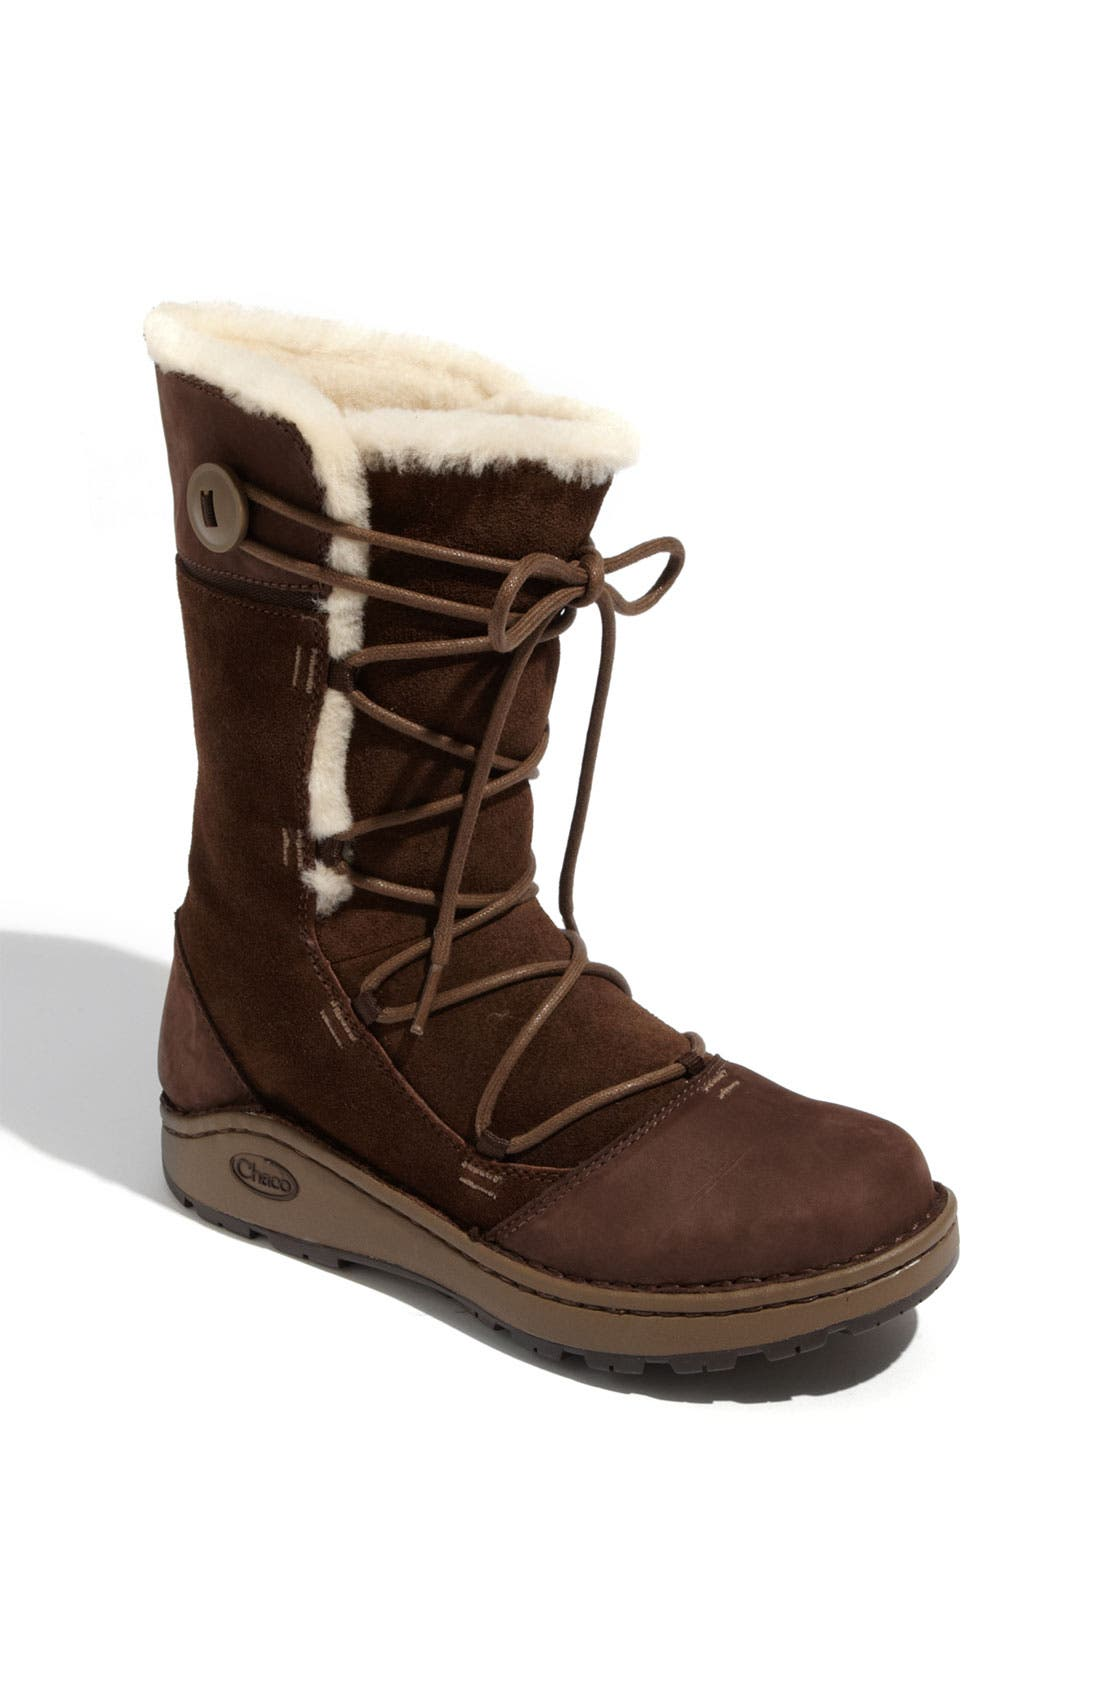 Main Image - Chaco 'Belyn' Boot